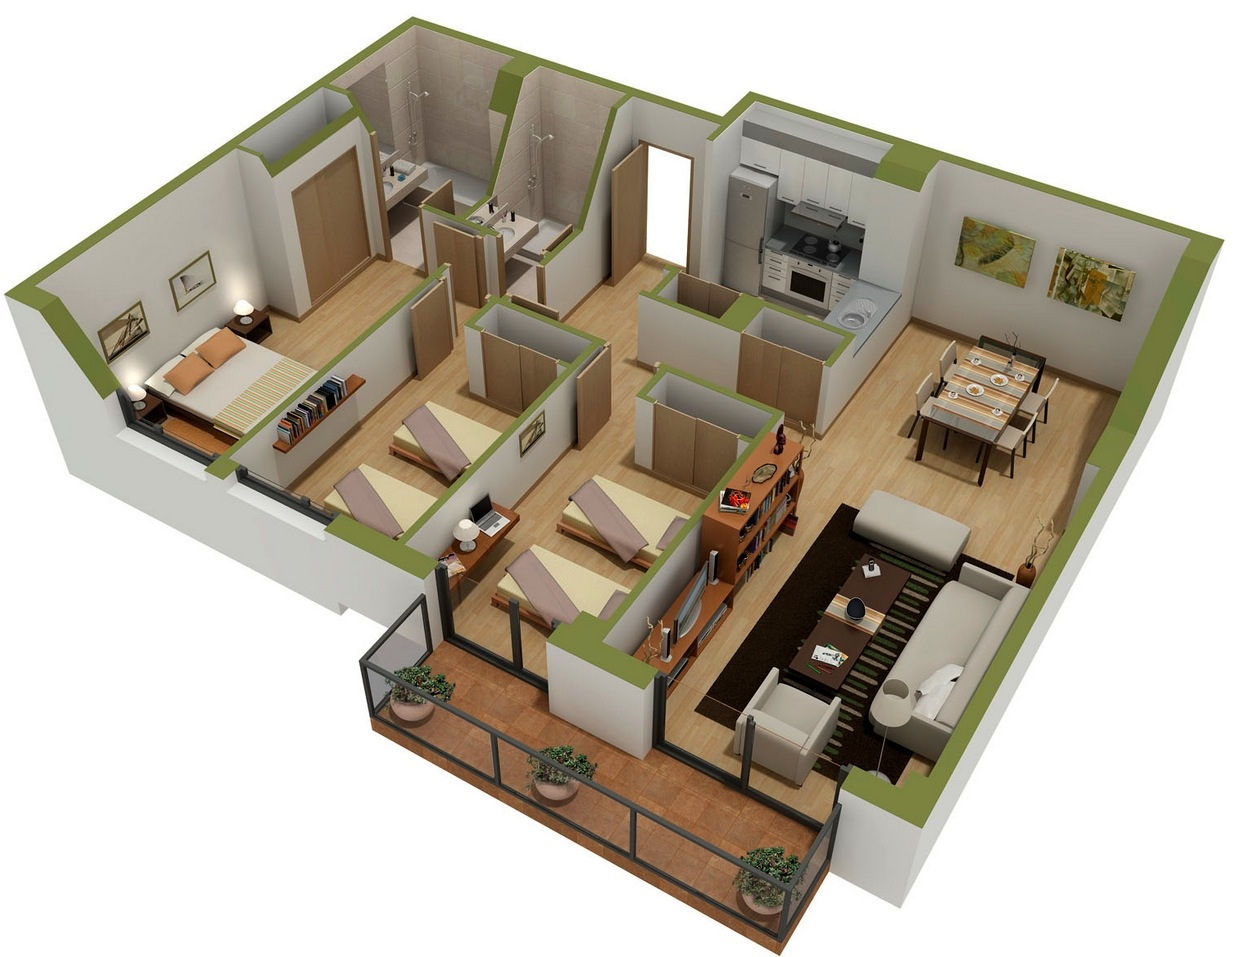 25 three bedroom house apartment floor plans for Small apartment layout plans